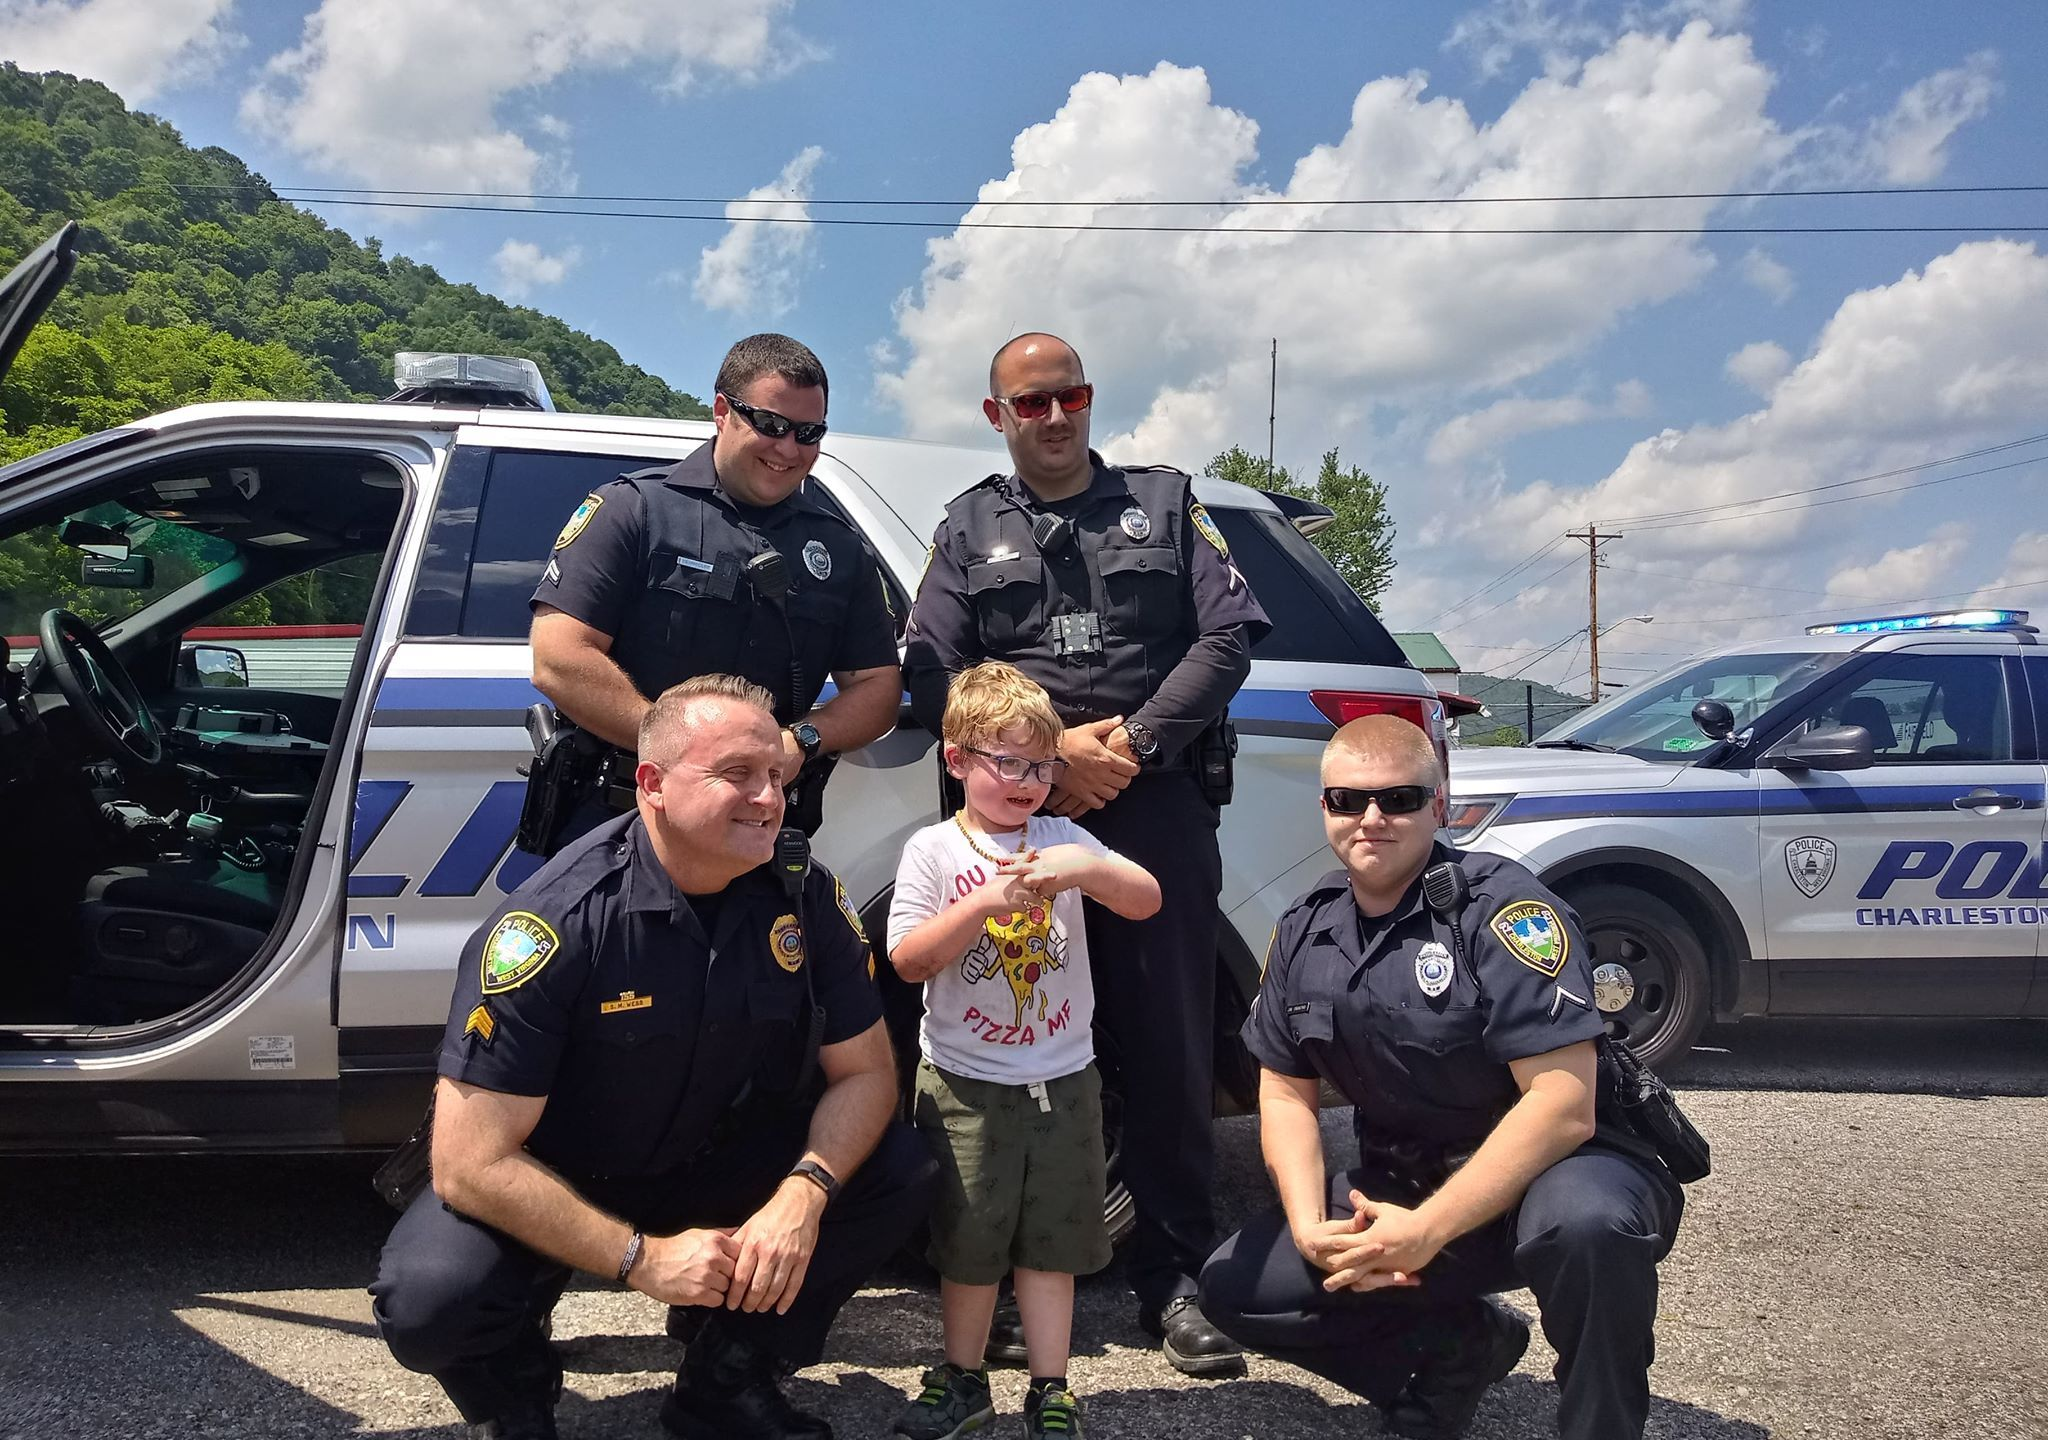 Charleston Police save 5-year-olds birthday party